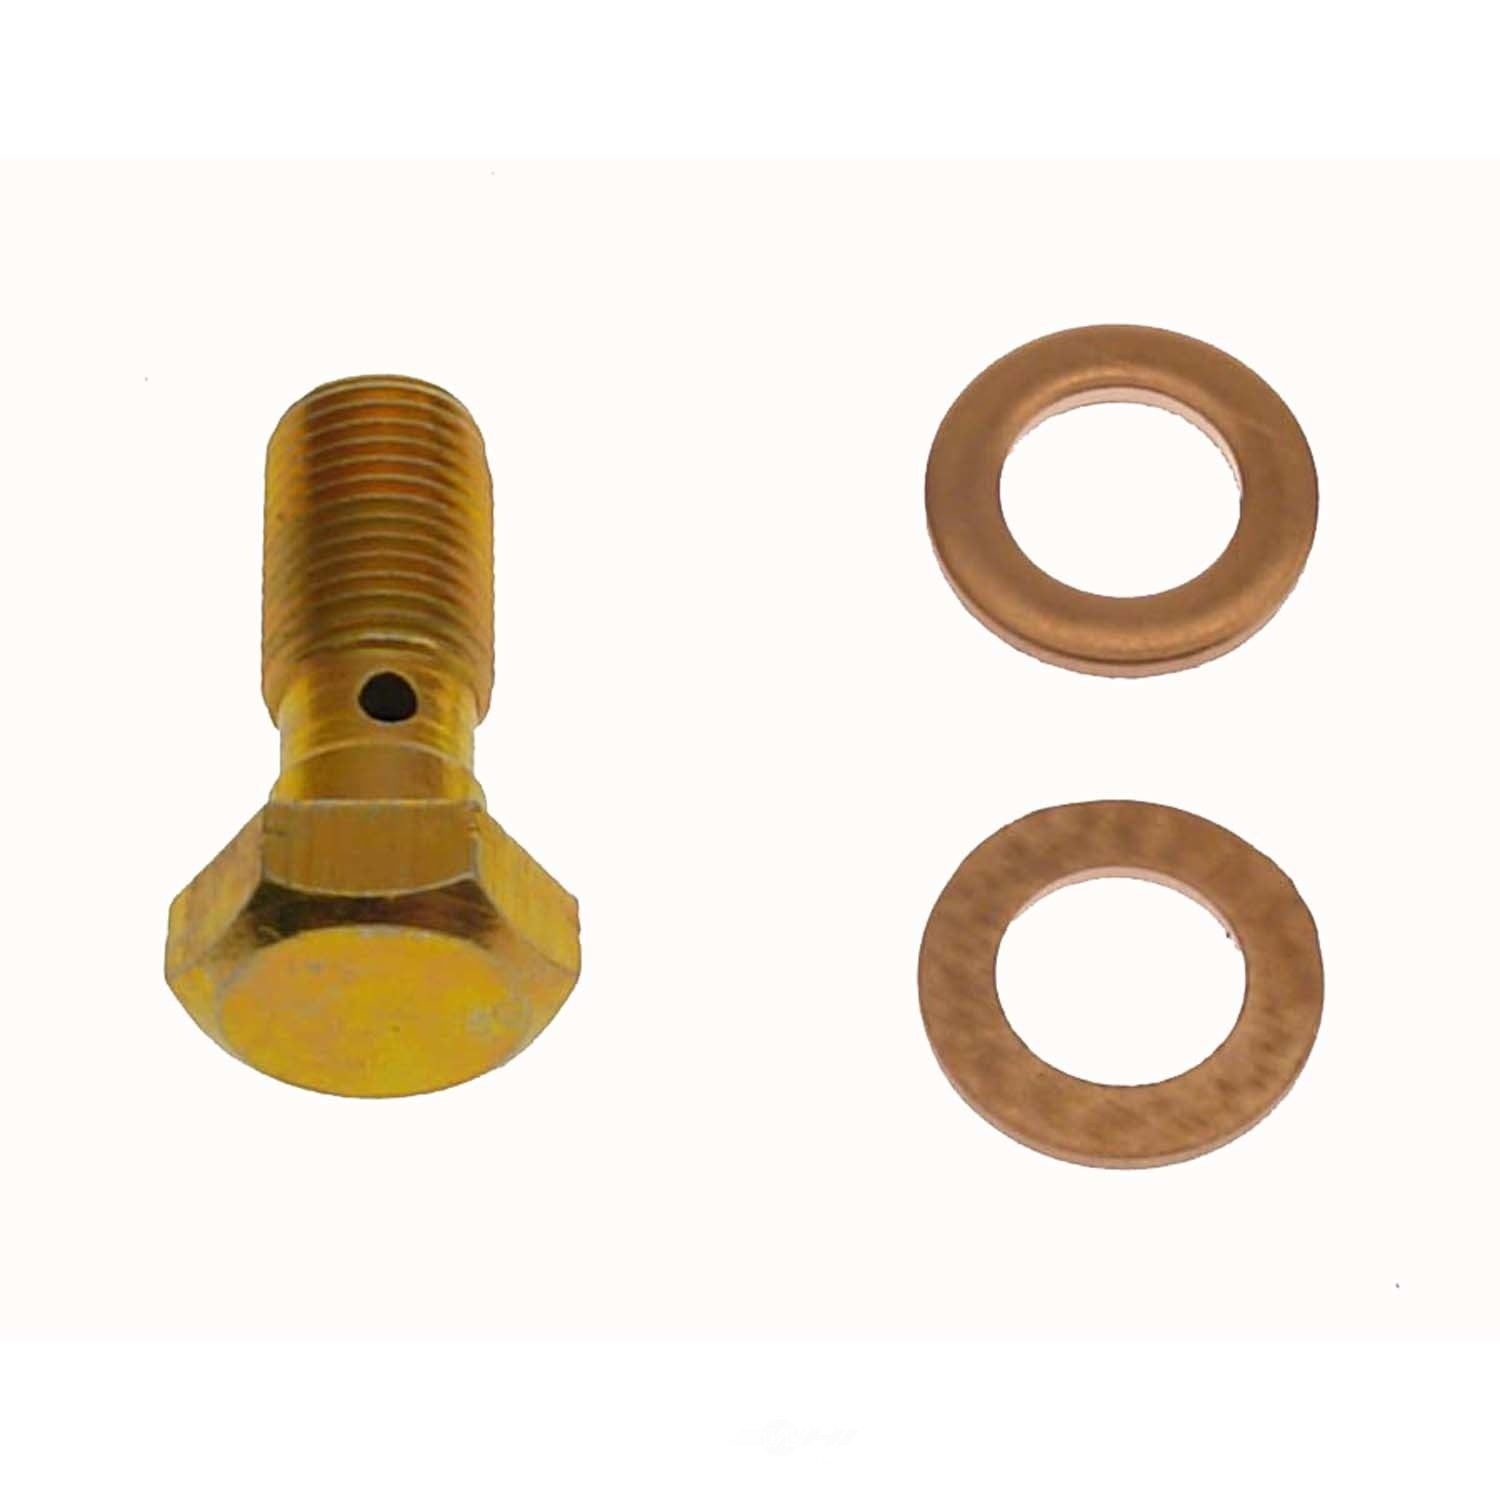 CARLSON QUALITY BRAKE PARTS - Brake Hydraulic Banjo Bolt - CRL H9488-2